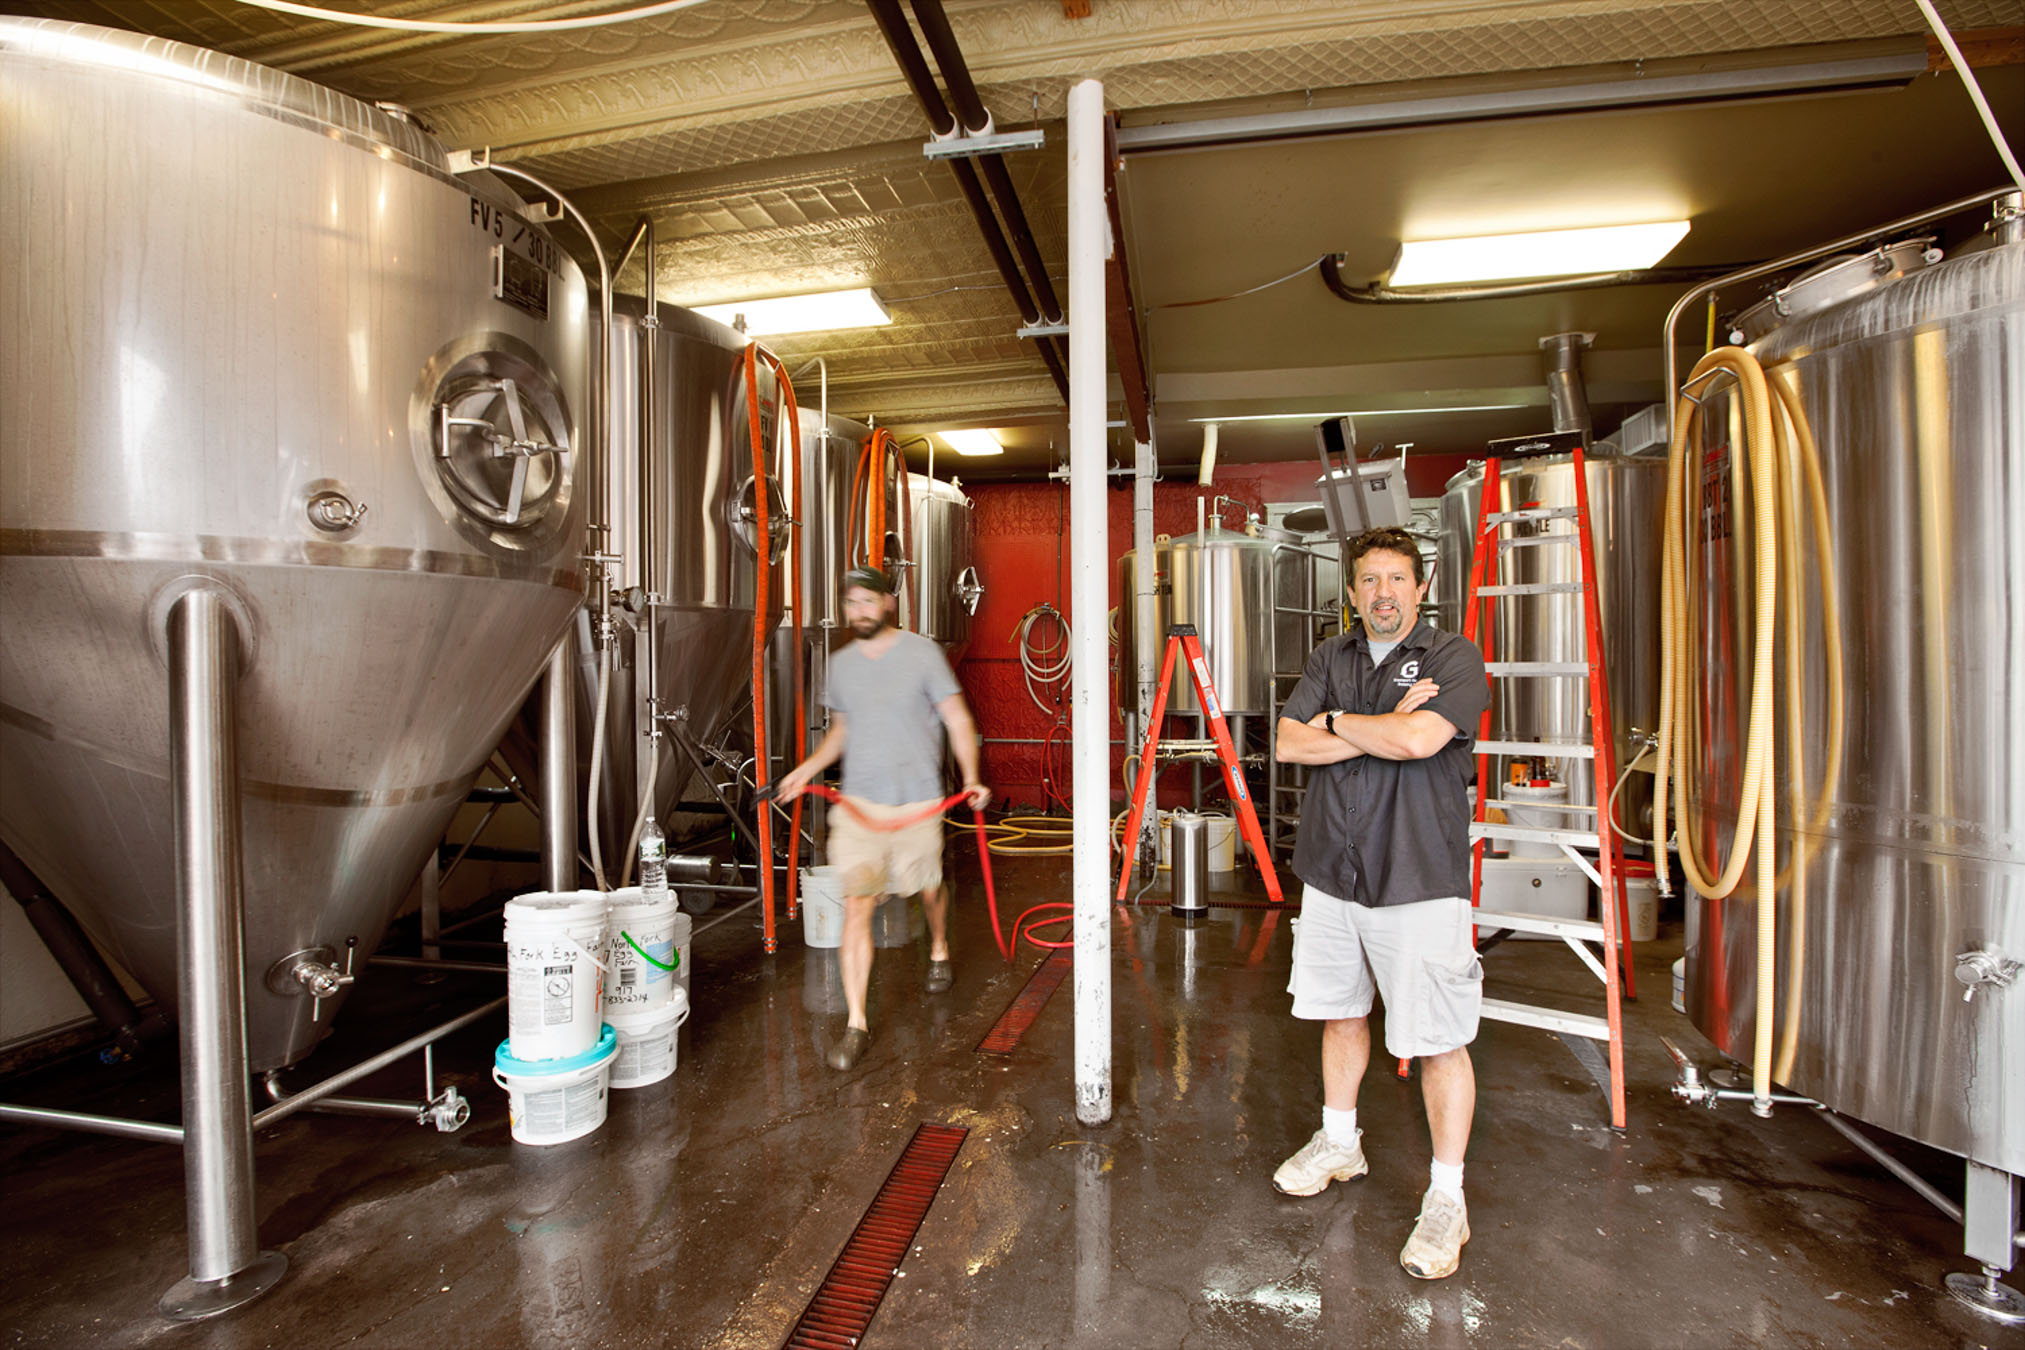 SMALL_BUSINESS_BREWERY_028_03